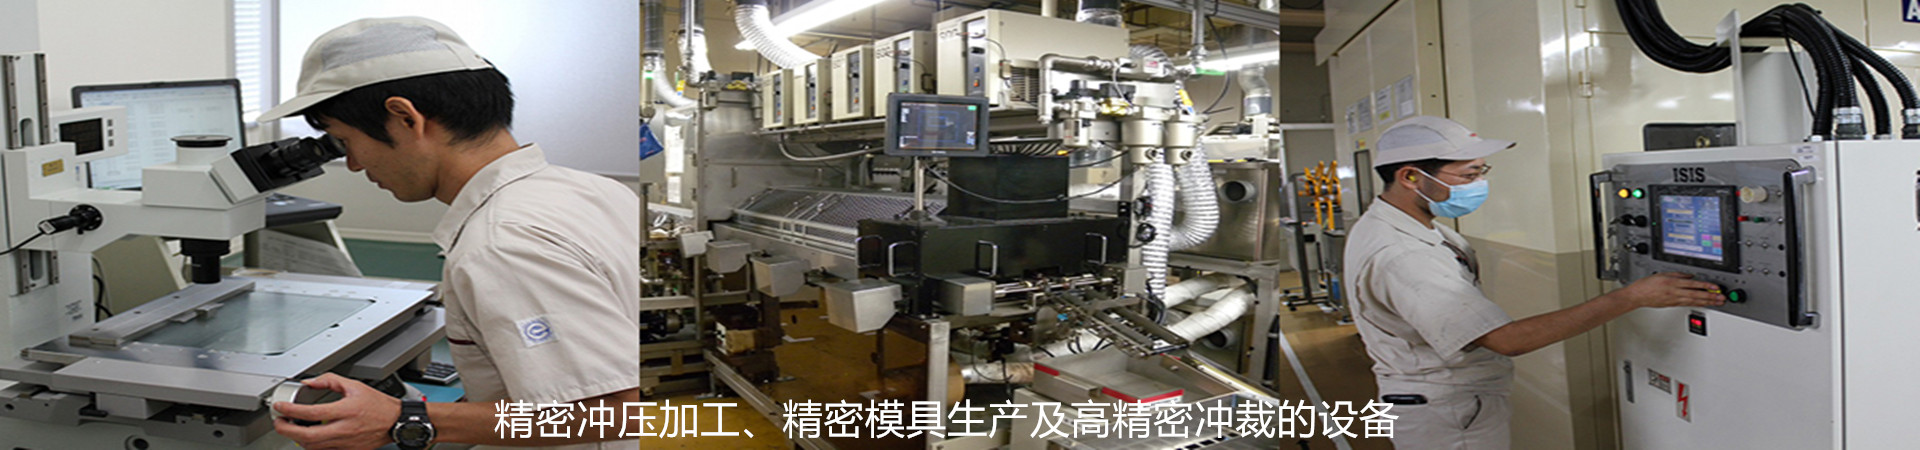 Precision stamping processing, precision mold design and production, and high-precision cutting equipment